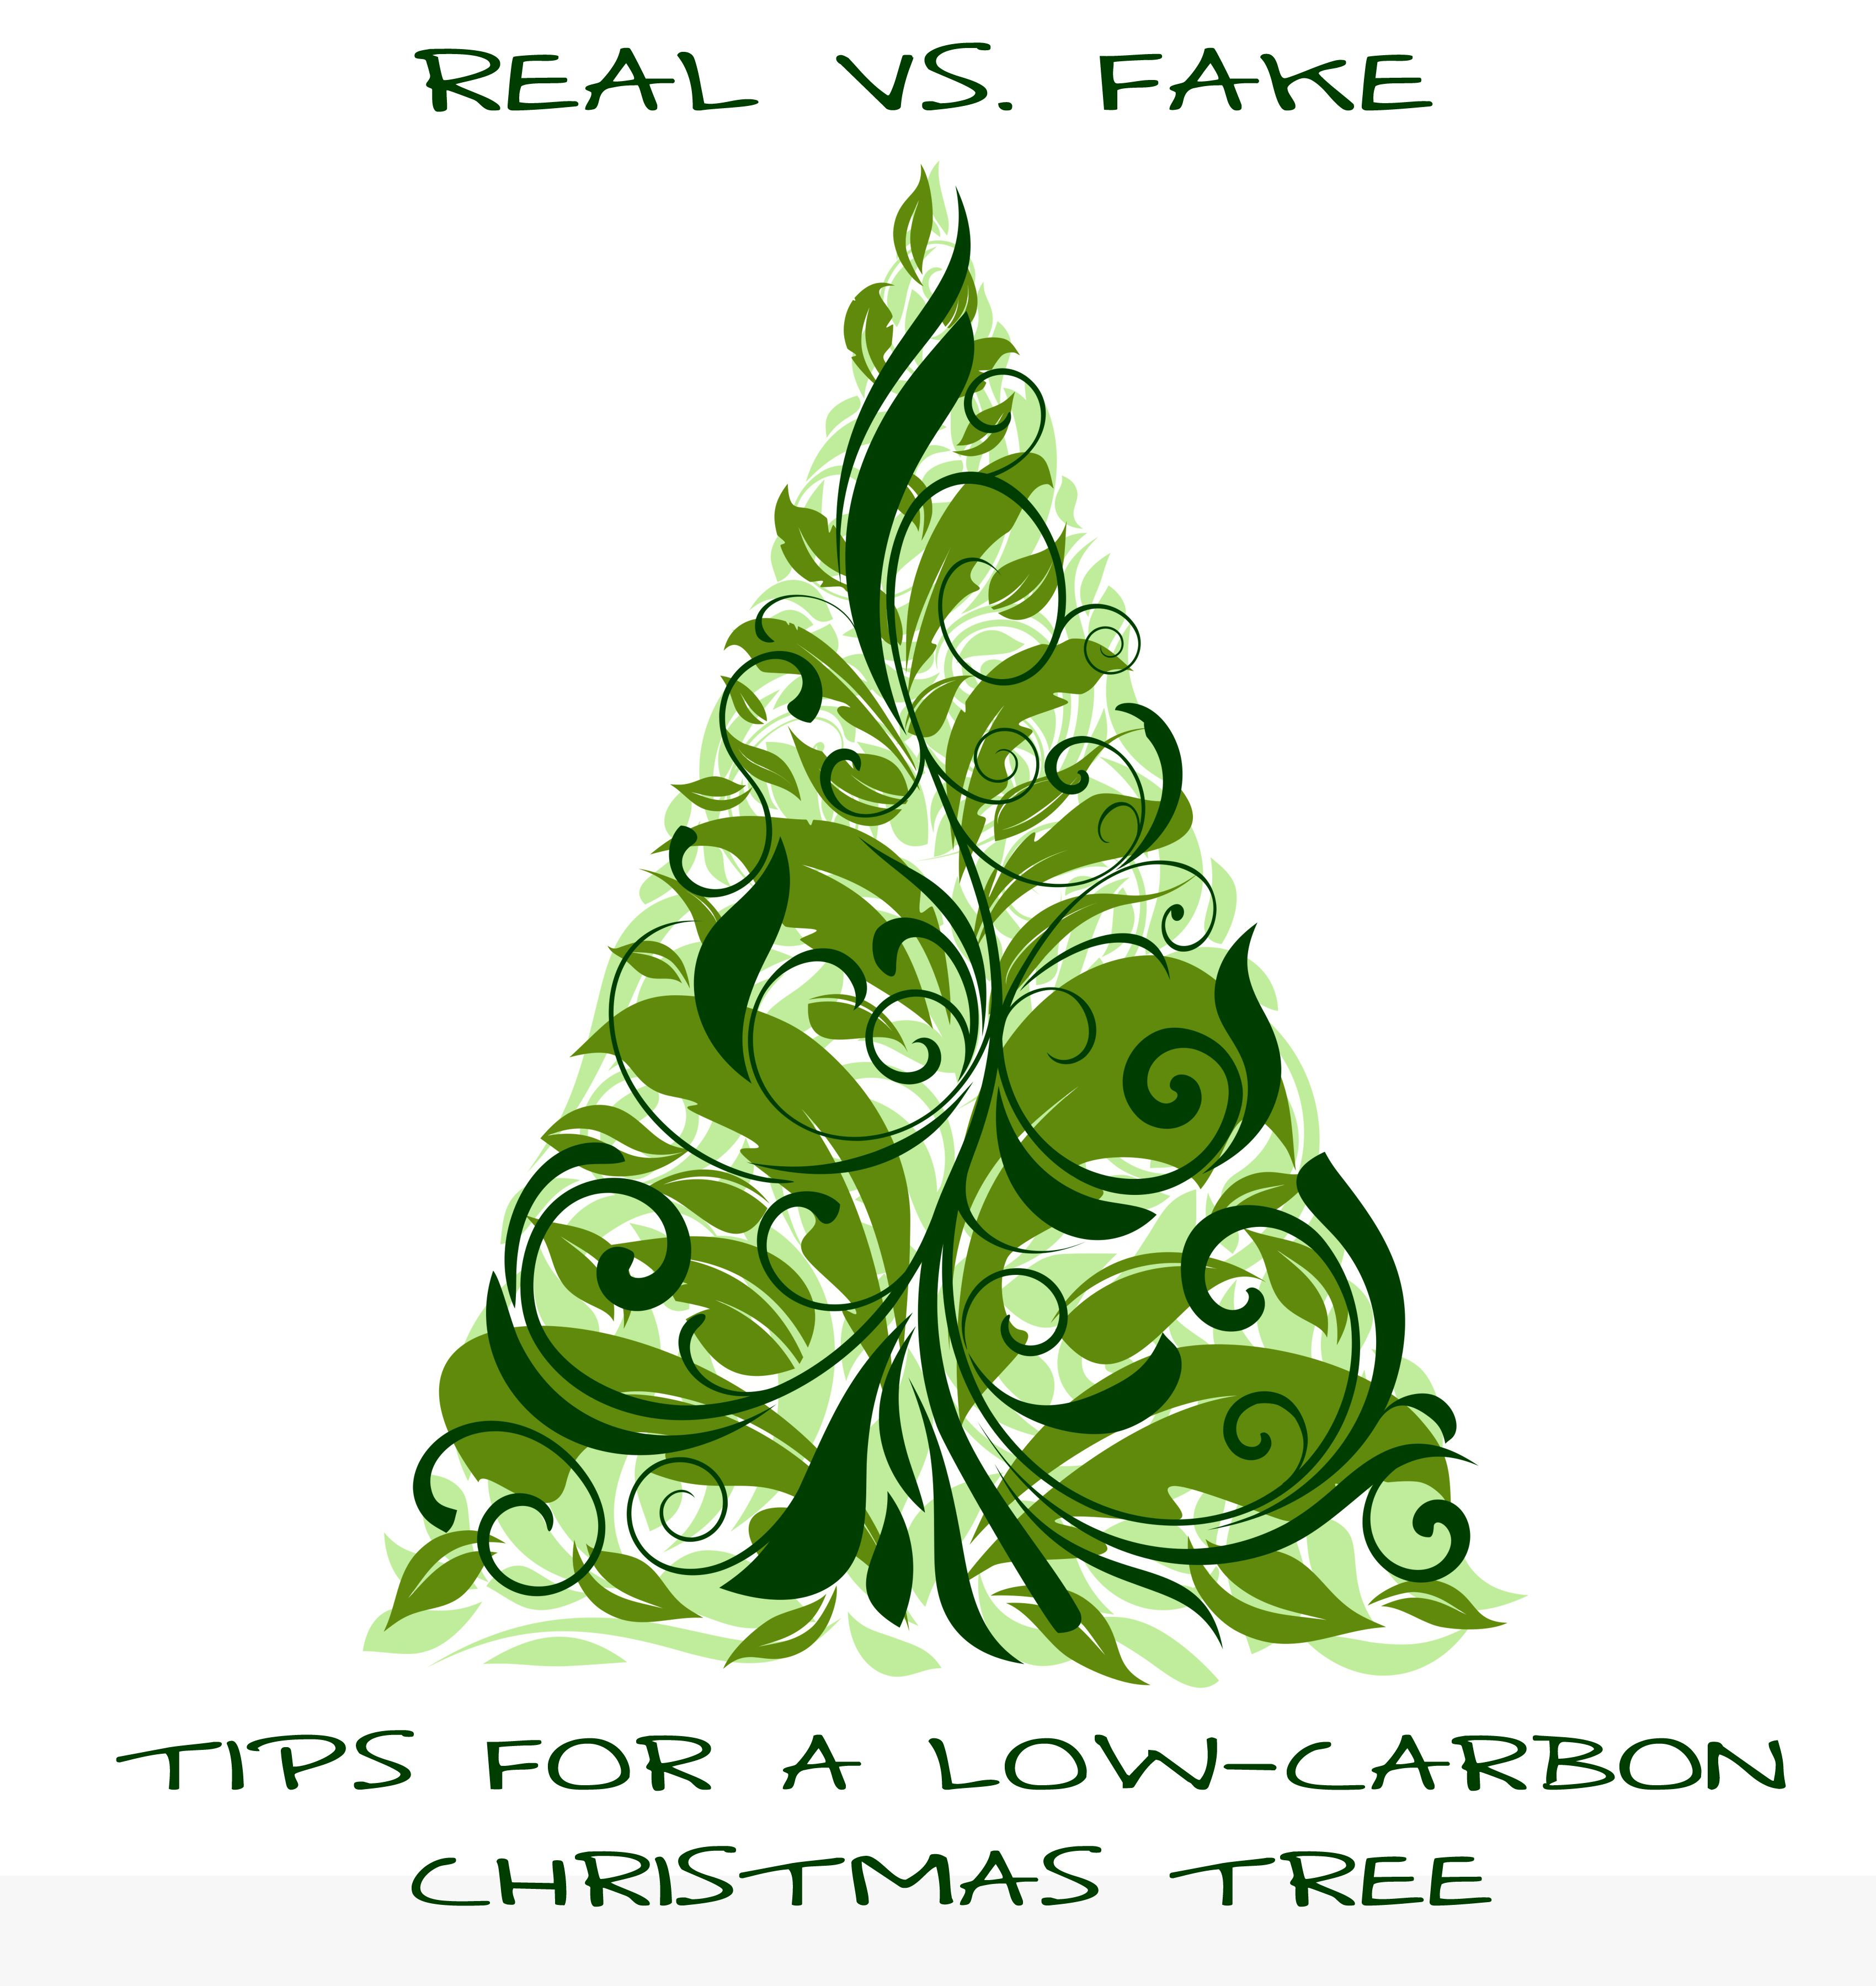 GREEN your Christmas tree! The biggest factors determining